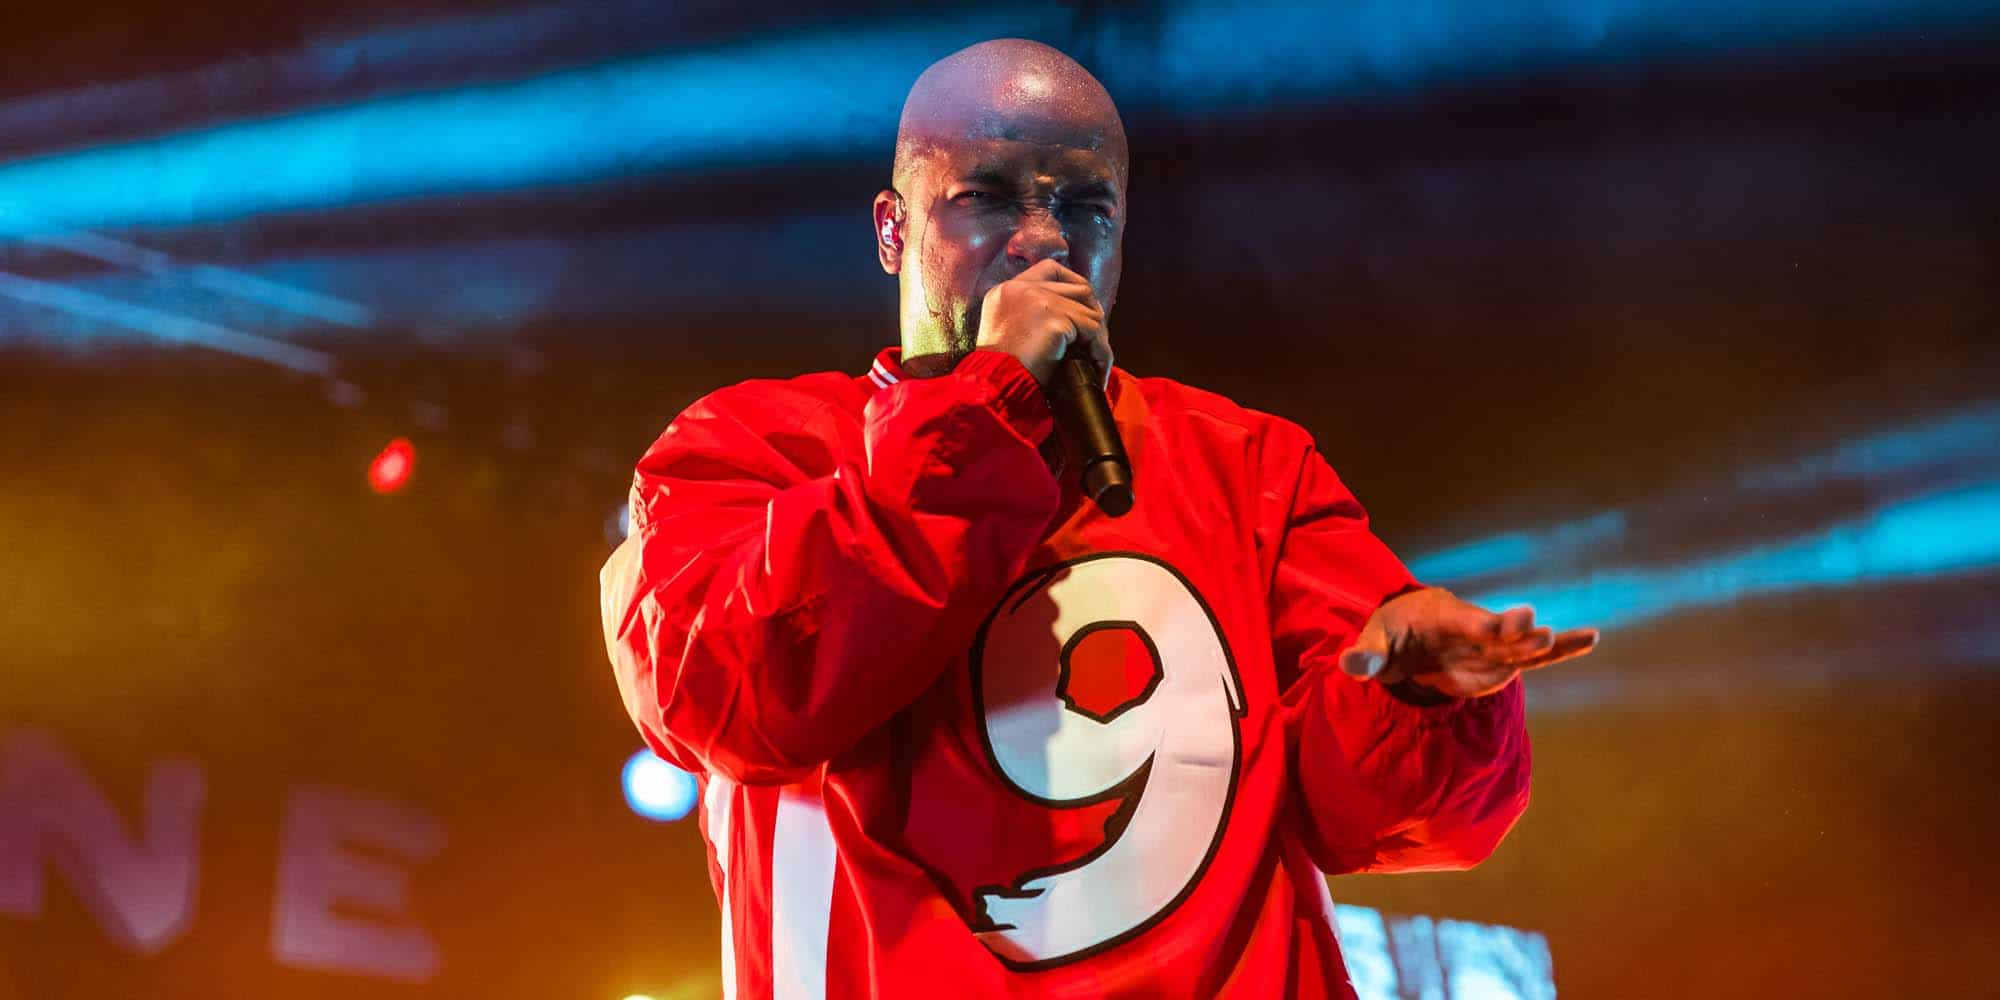 Tech N9ne Brings The King, The Clown, and The G to The Armory